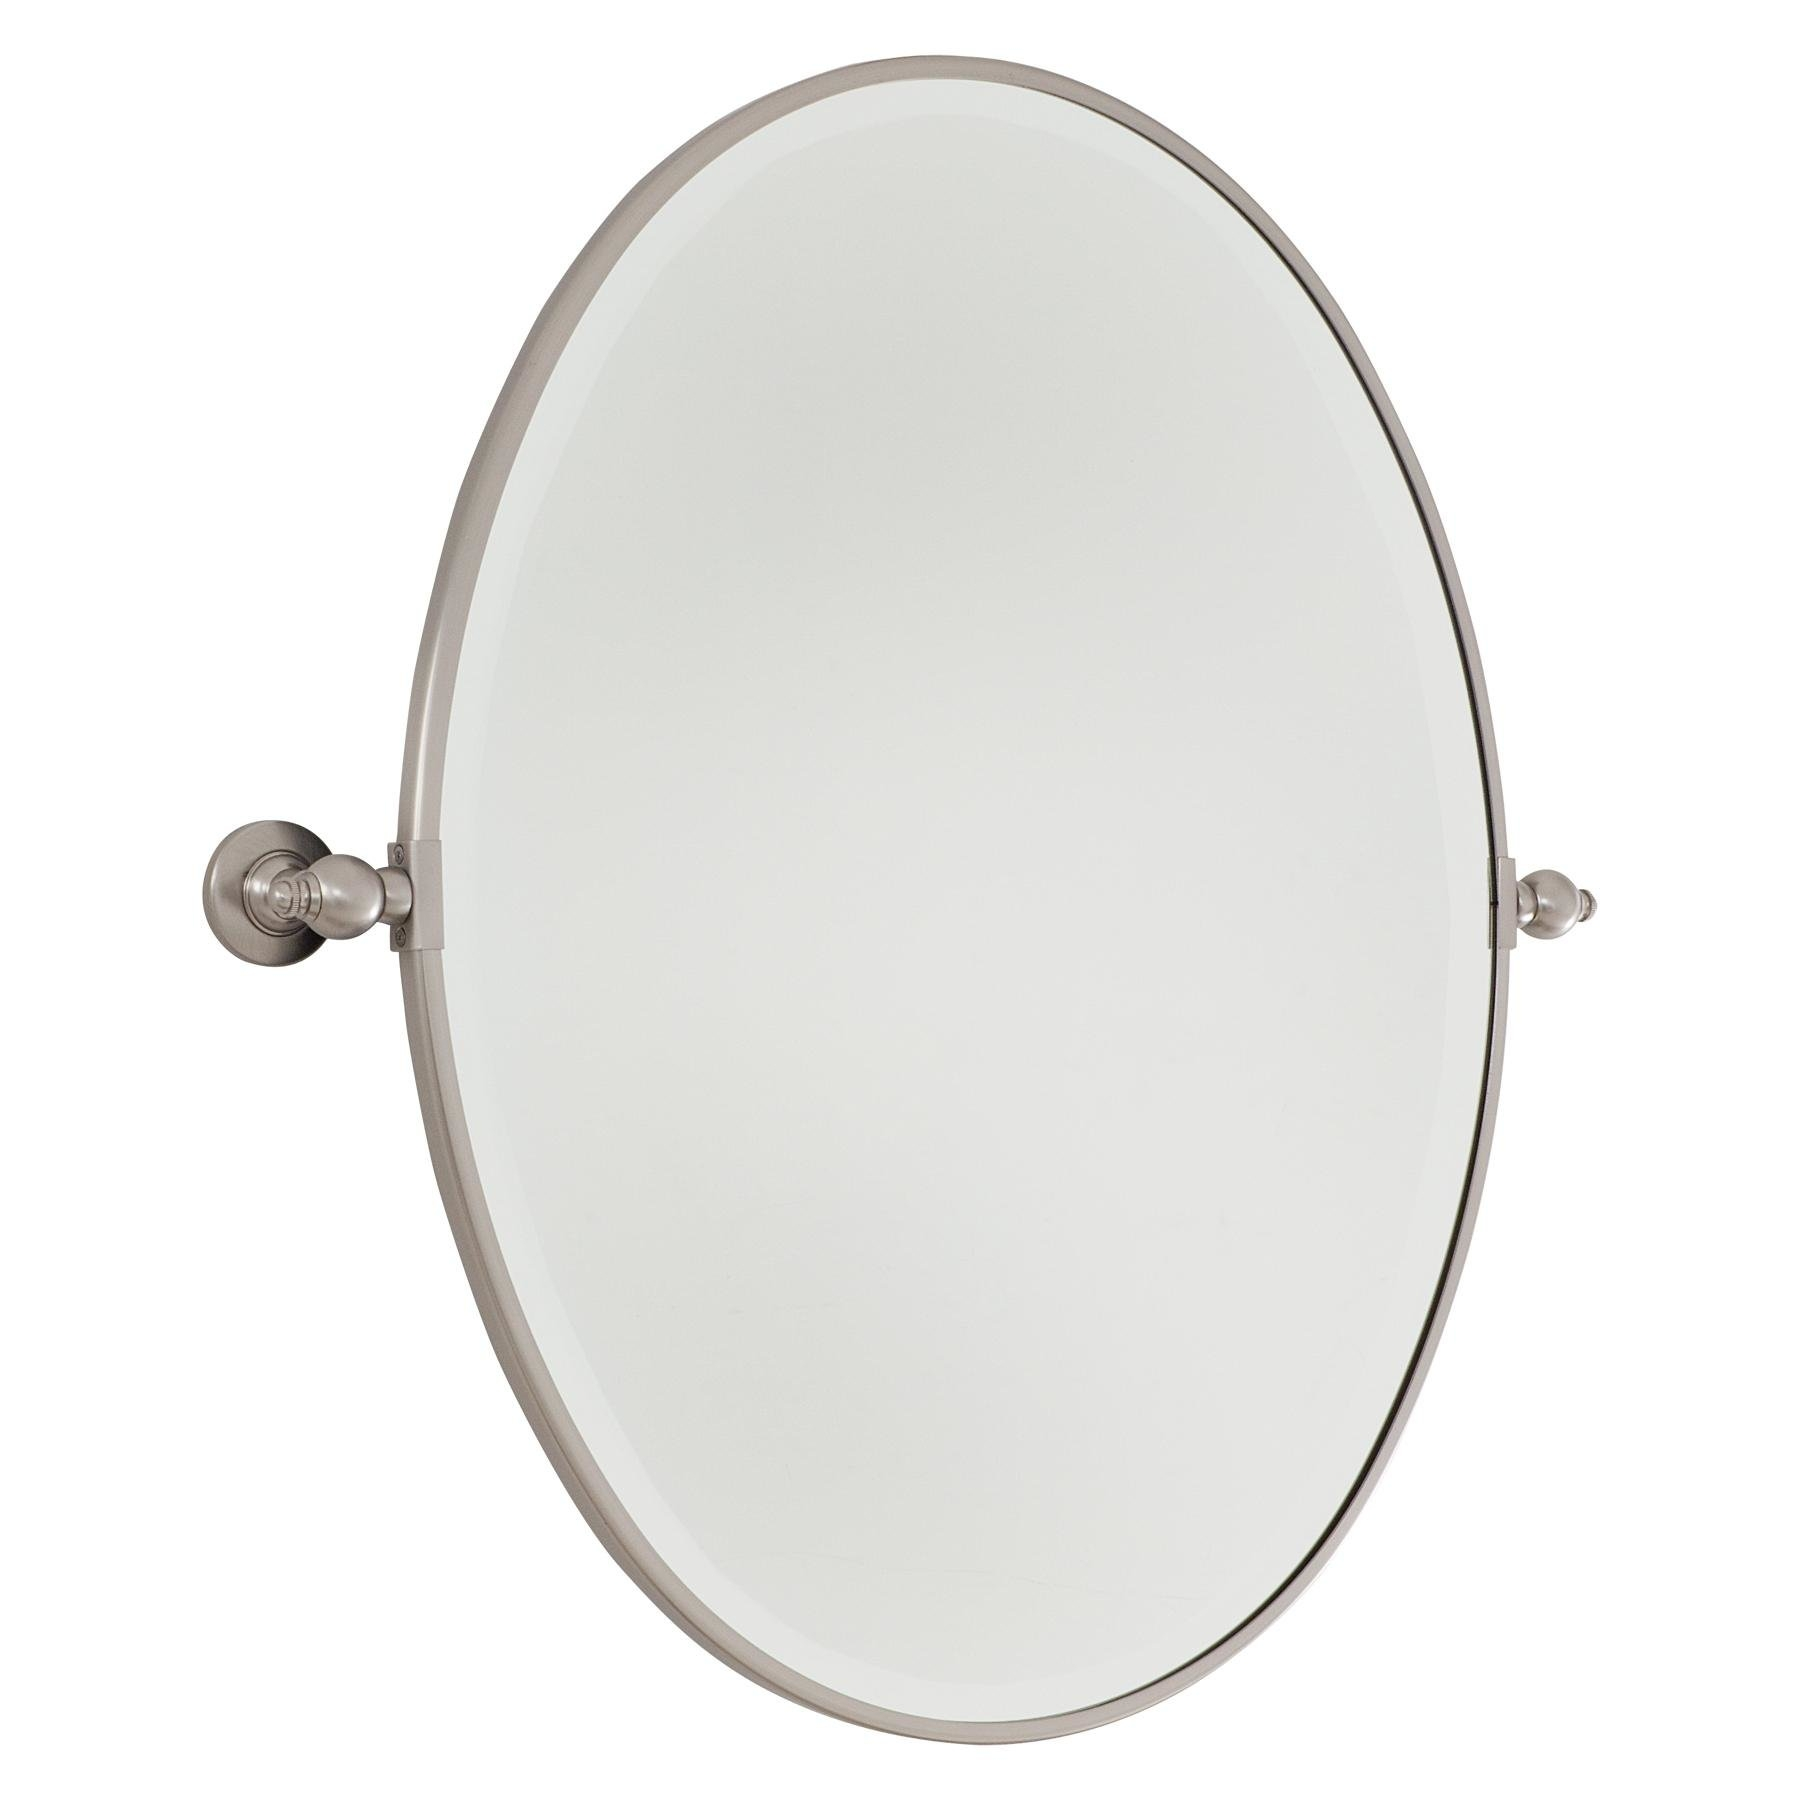 Minka Lavery Oval Wall Mirror Reviews Wayfair Inside Black Oval Wall Mirror (Image 6 of 15)